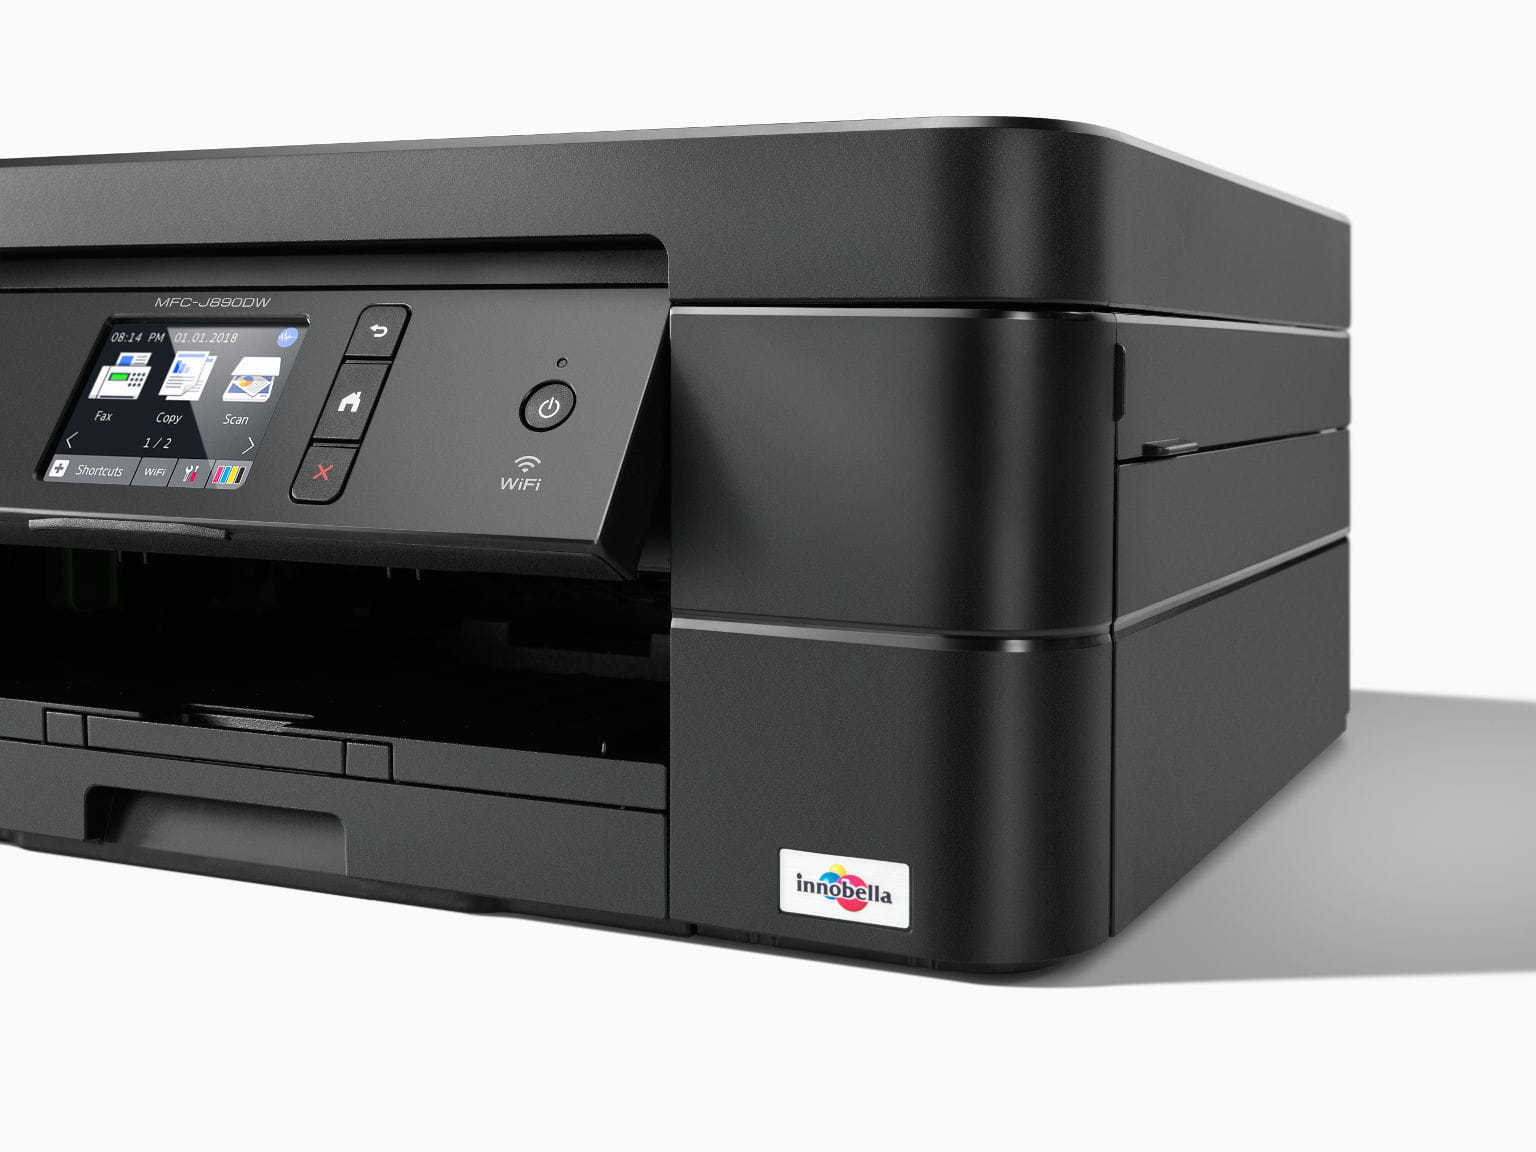 Impresora multifunción tinta MFC-J890DW Brother